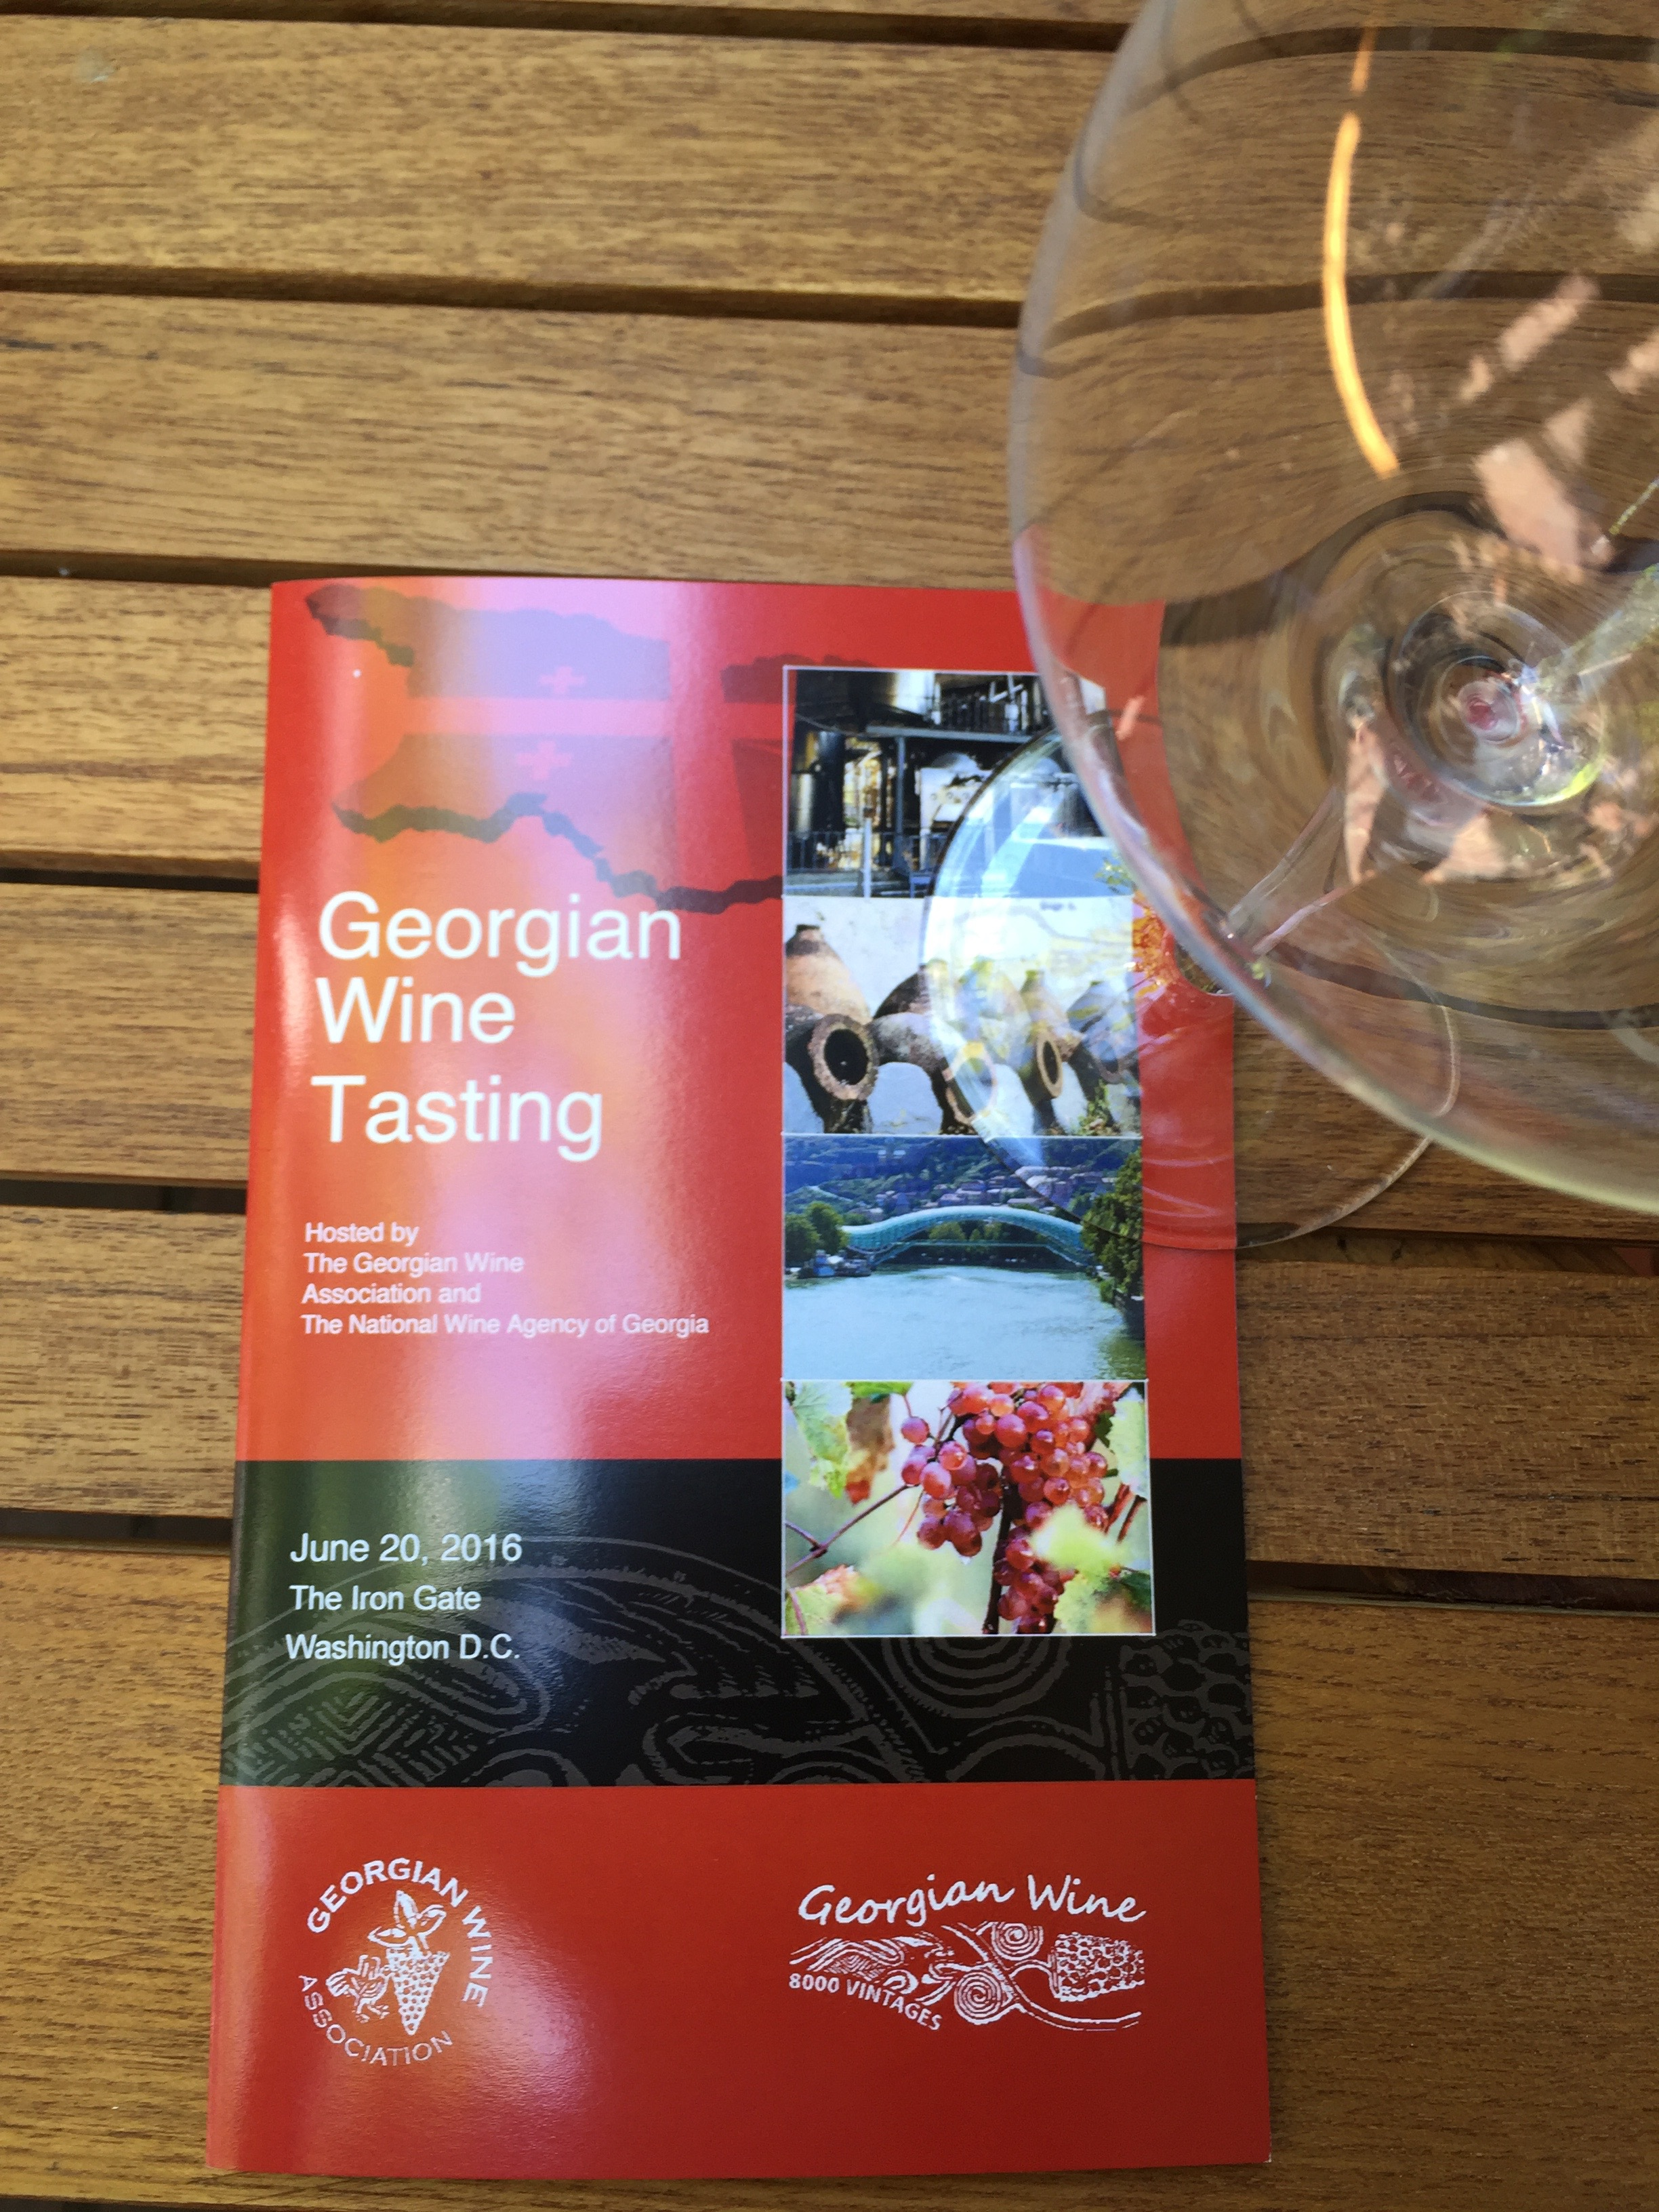 Ready for a day tasting Georgian wine.